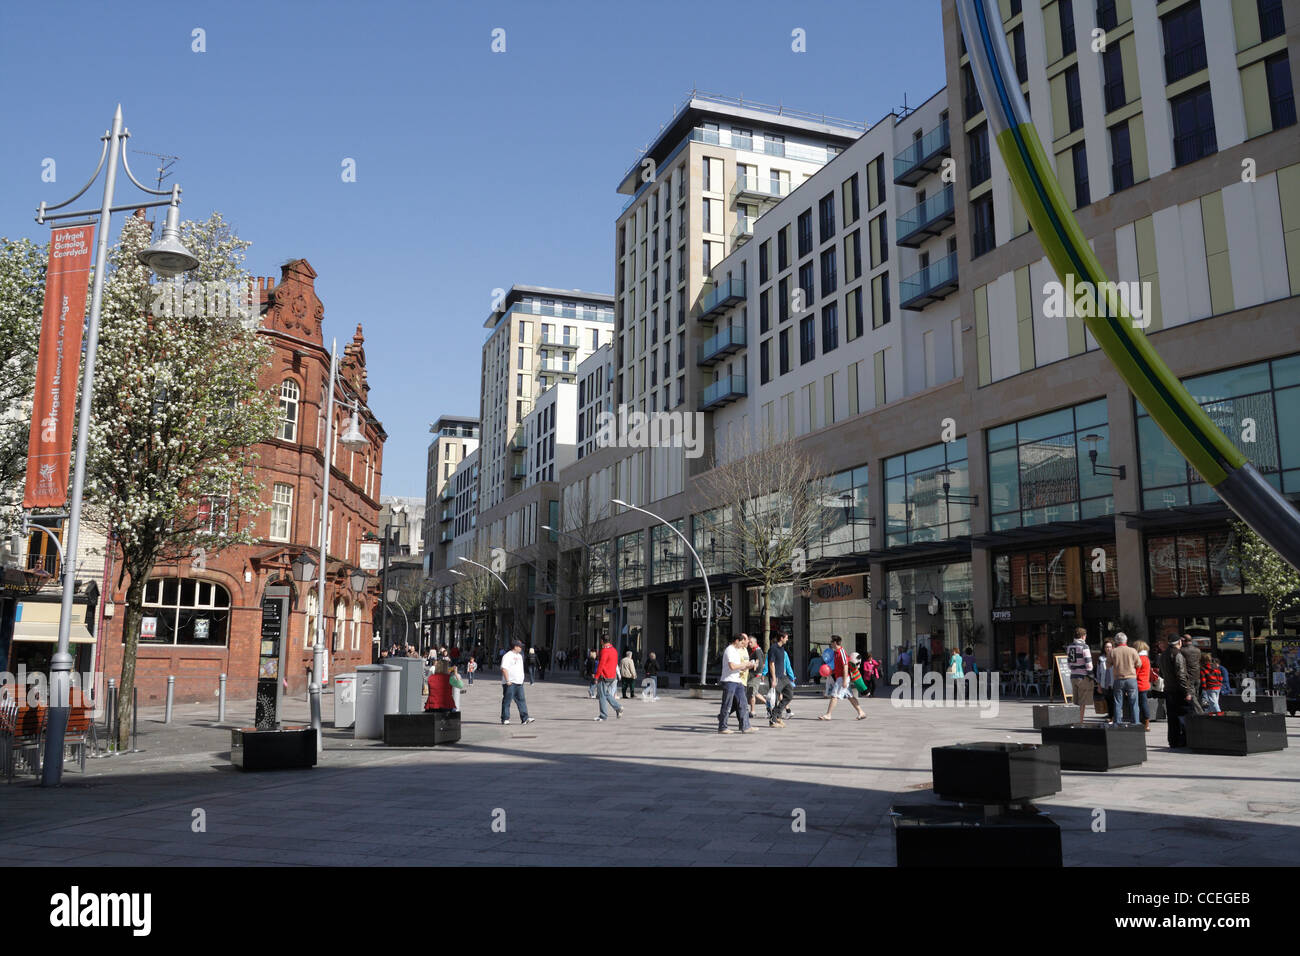 The Hayes Shopping precinct, with the St Davids 2 shopping residential complex - Stock Image